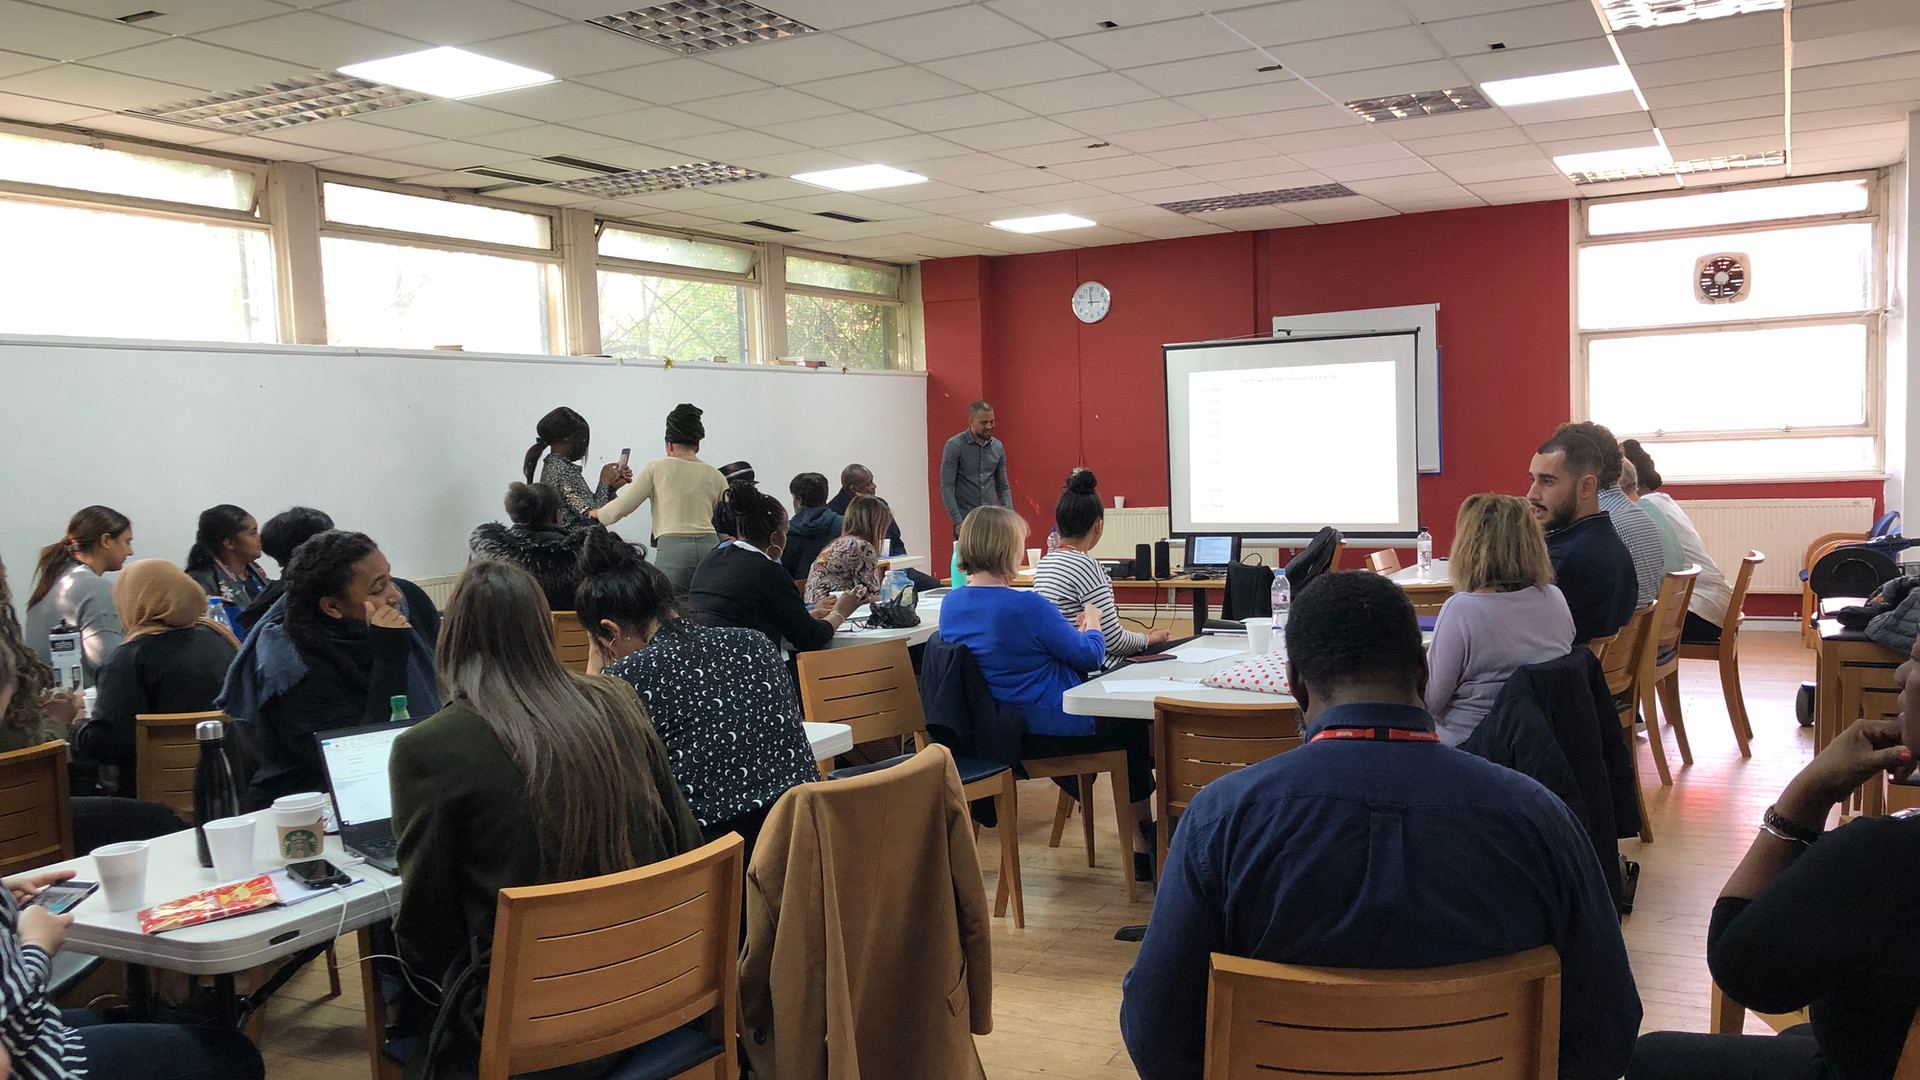 County Lines Training for professionals, HEY Network, Tottenham